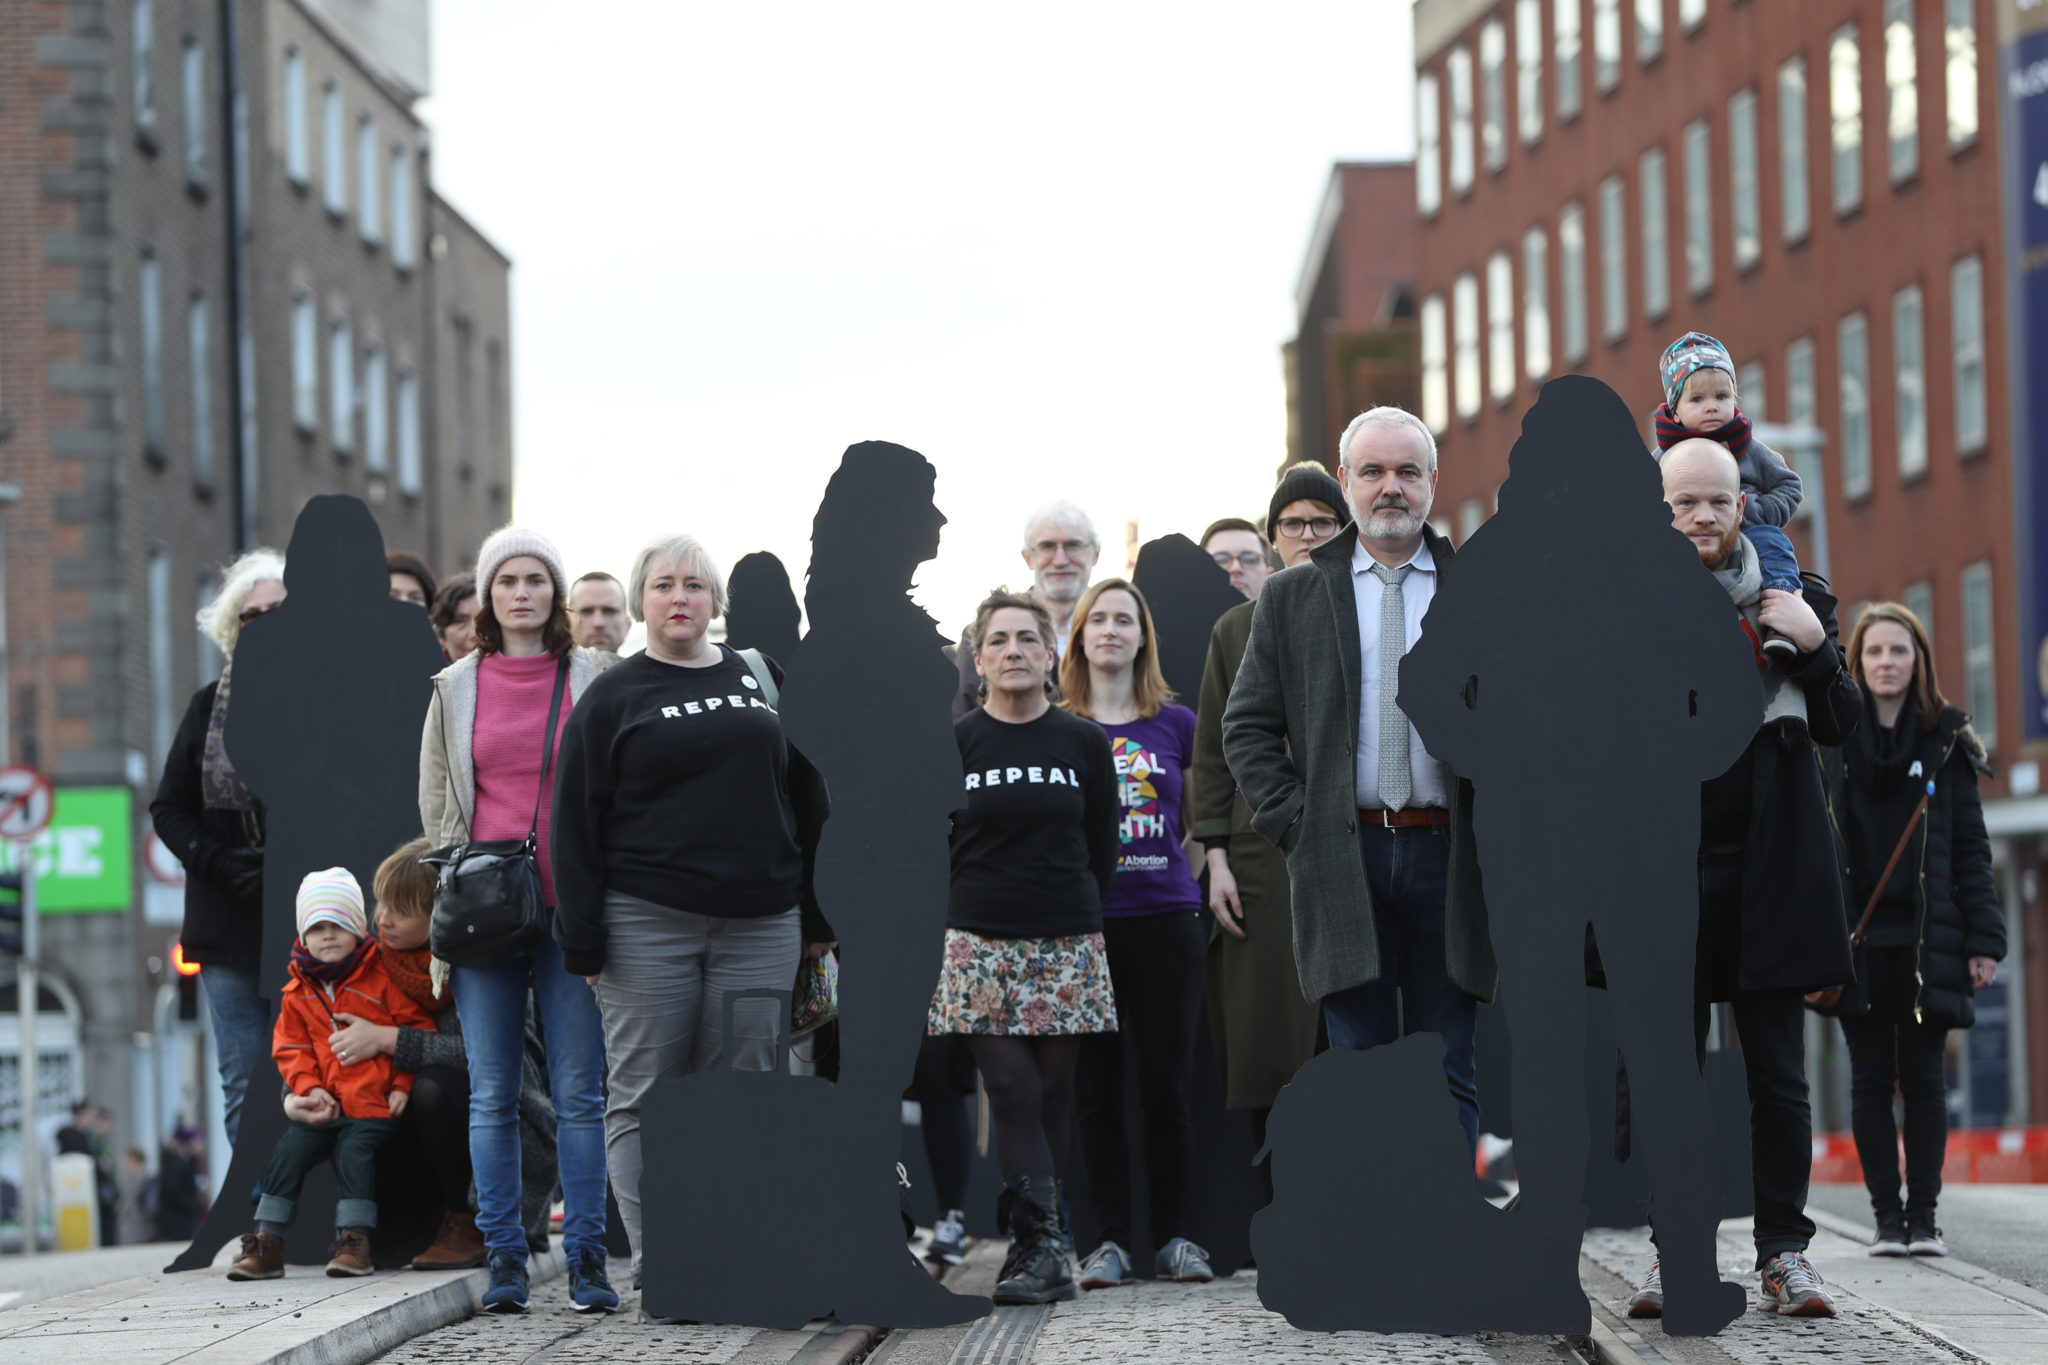 Amnesty International/Red C poll reveals 60% support access to abortion on request